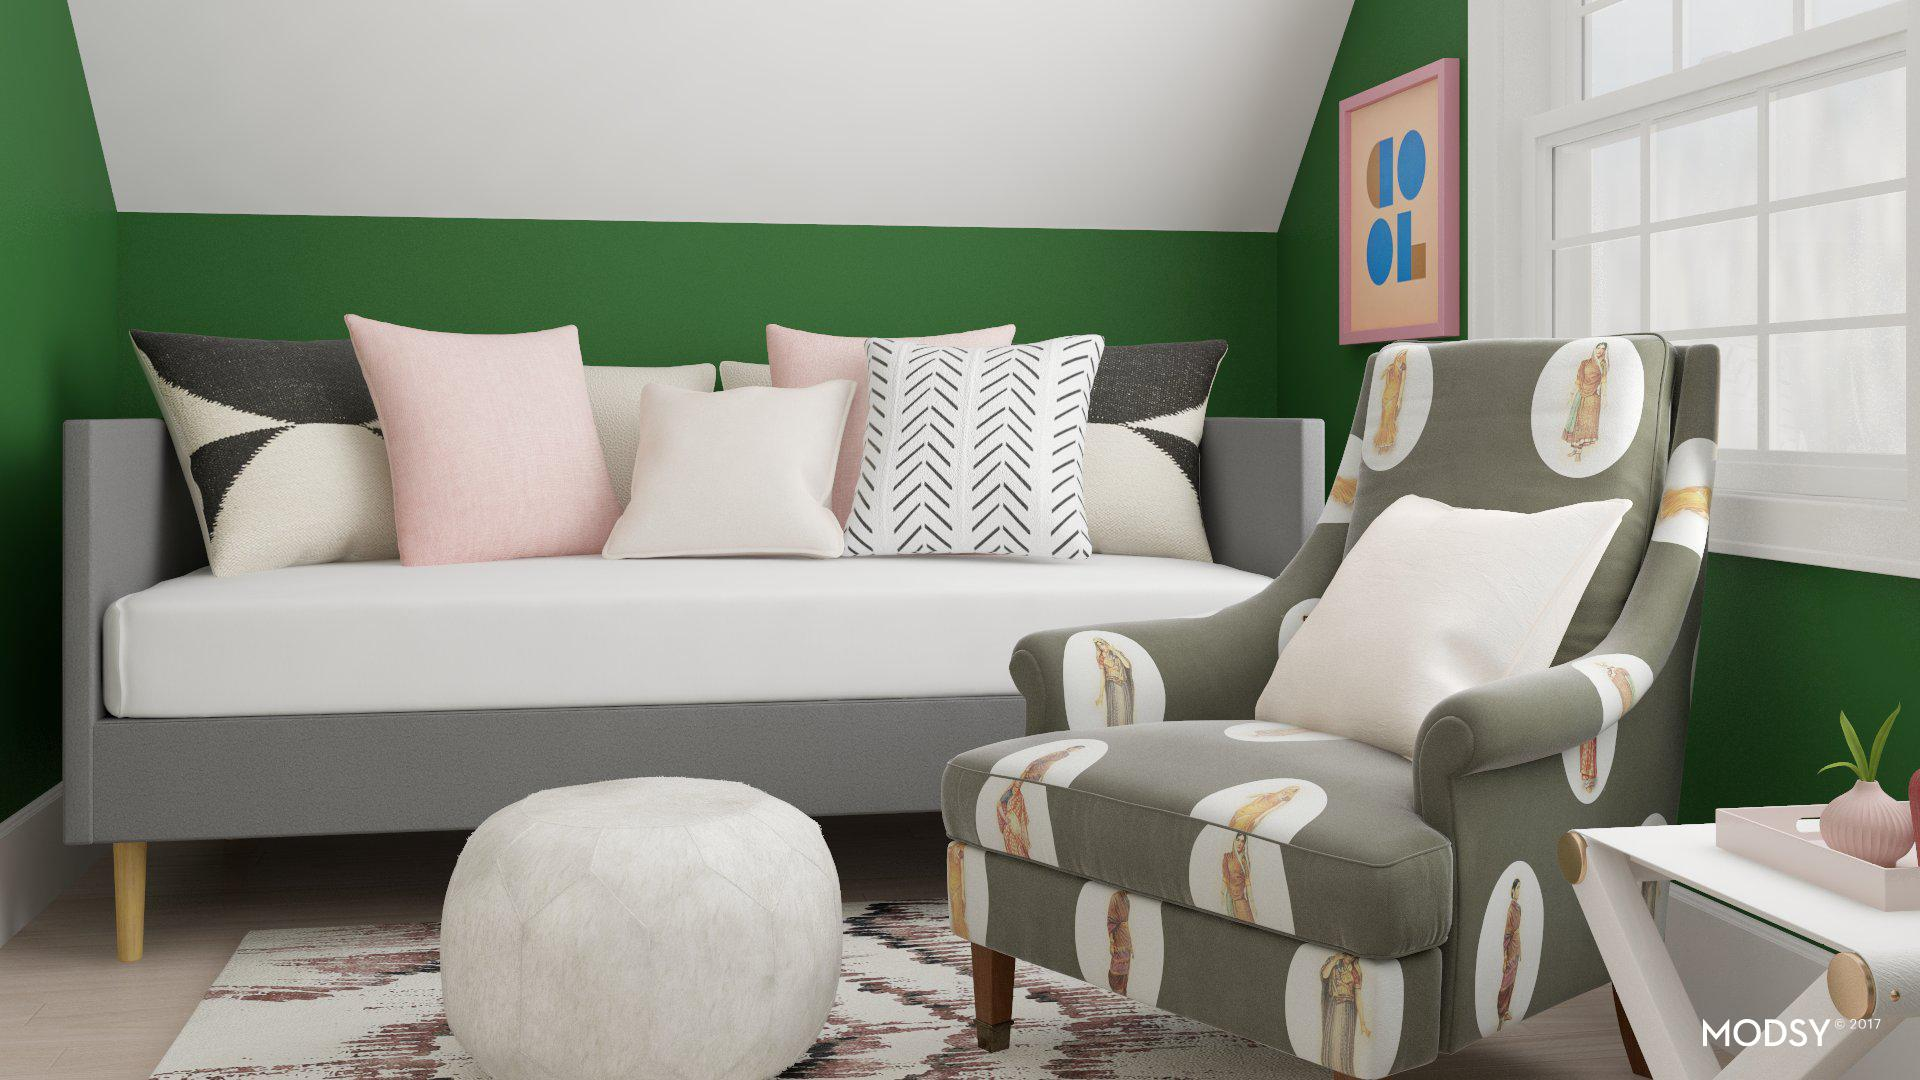 Ever seen room renderings so life like that you can immediately picture your life inside that space?! Well, with our guest room makeover I've been planning with Modsy and cannot wait to see the space come to life.